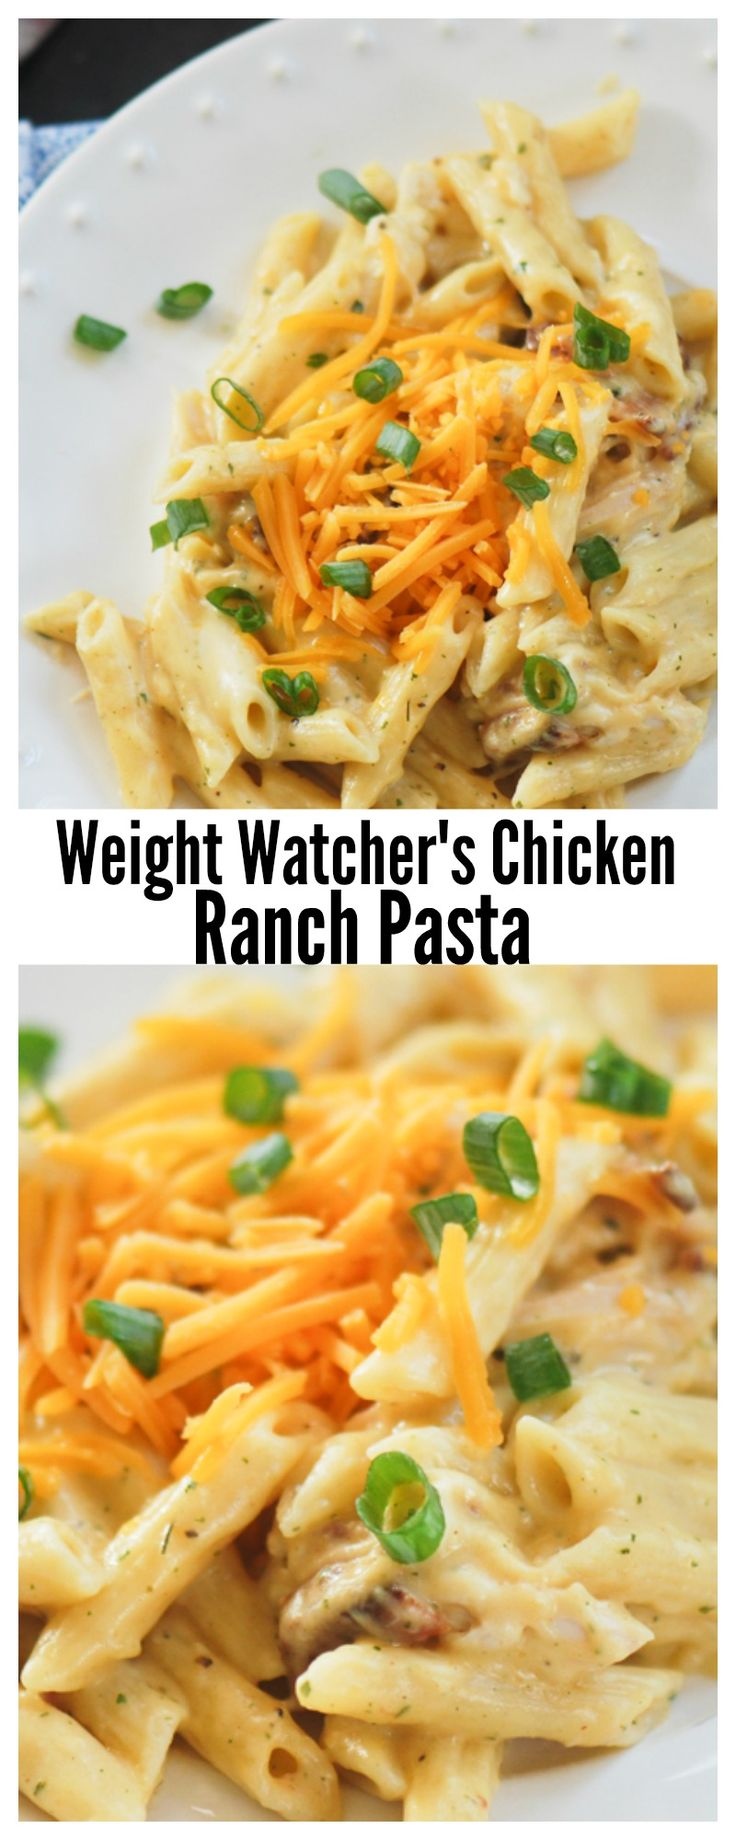 Weight Watcher's Chicken Ranch Pasta - OMG!!! My diet can work with this!! Cheesy and delicious! We used Ronzoni Smart Taste Penne, precooked REAL bacon and precooked John Soules Chicken Fajita Strips. YUM YUM!!